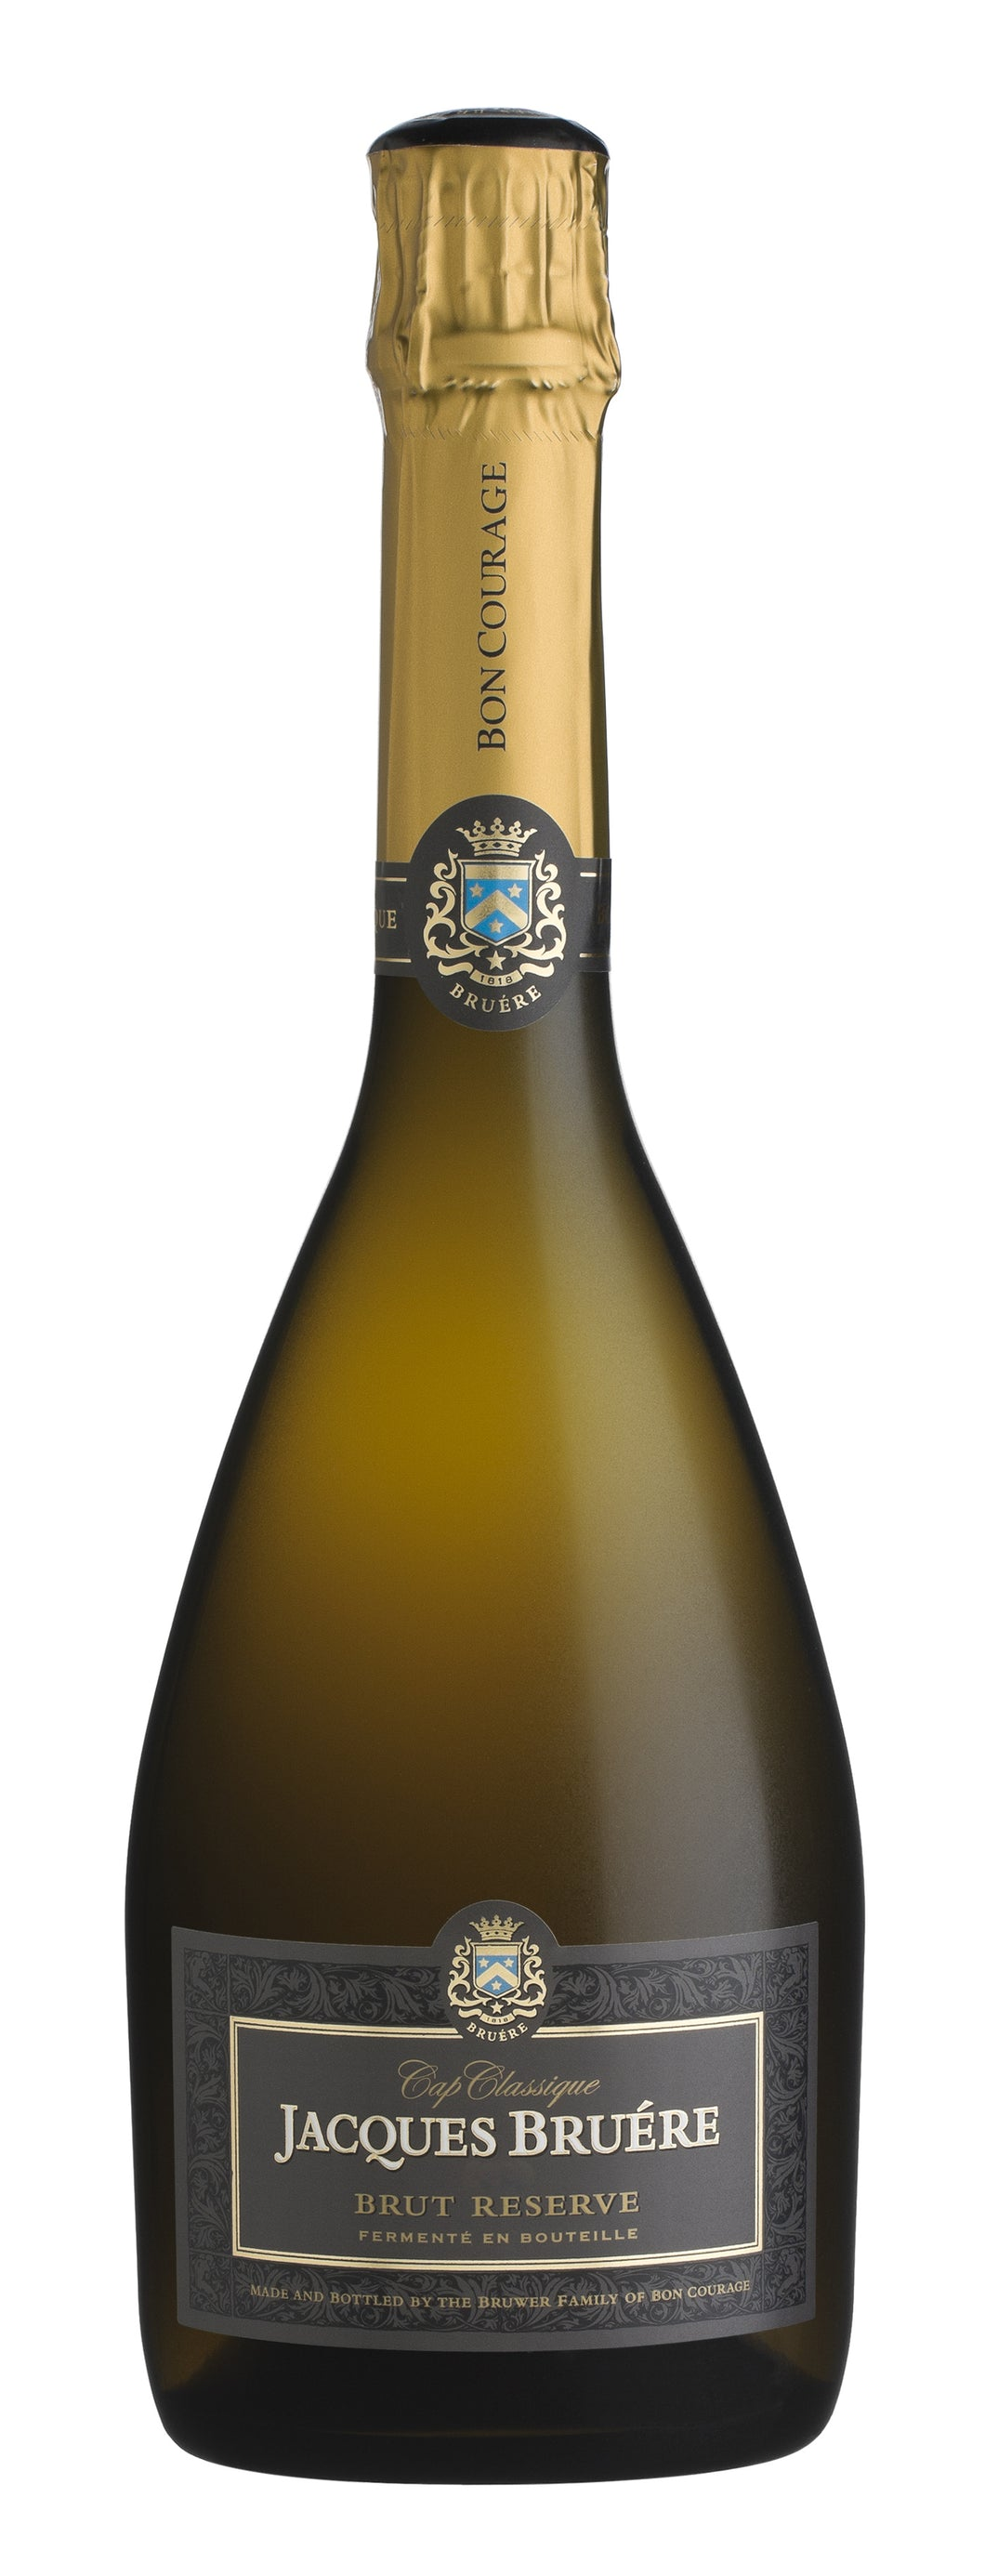 Bon Courage Jacques Bruére Brut Reserve 2012 (SOON TO BE LAUNCHED)